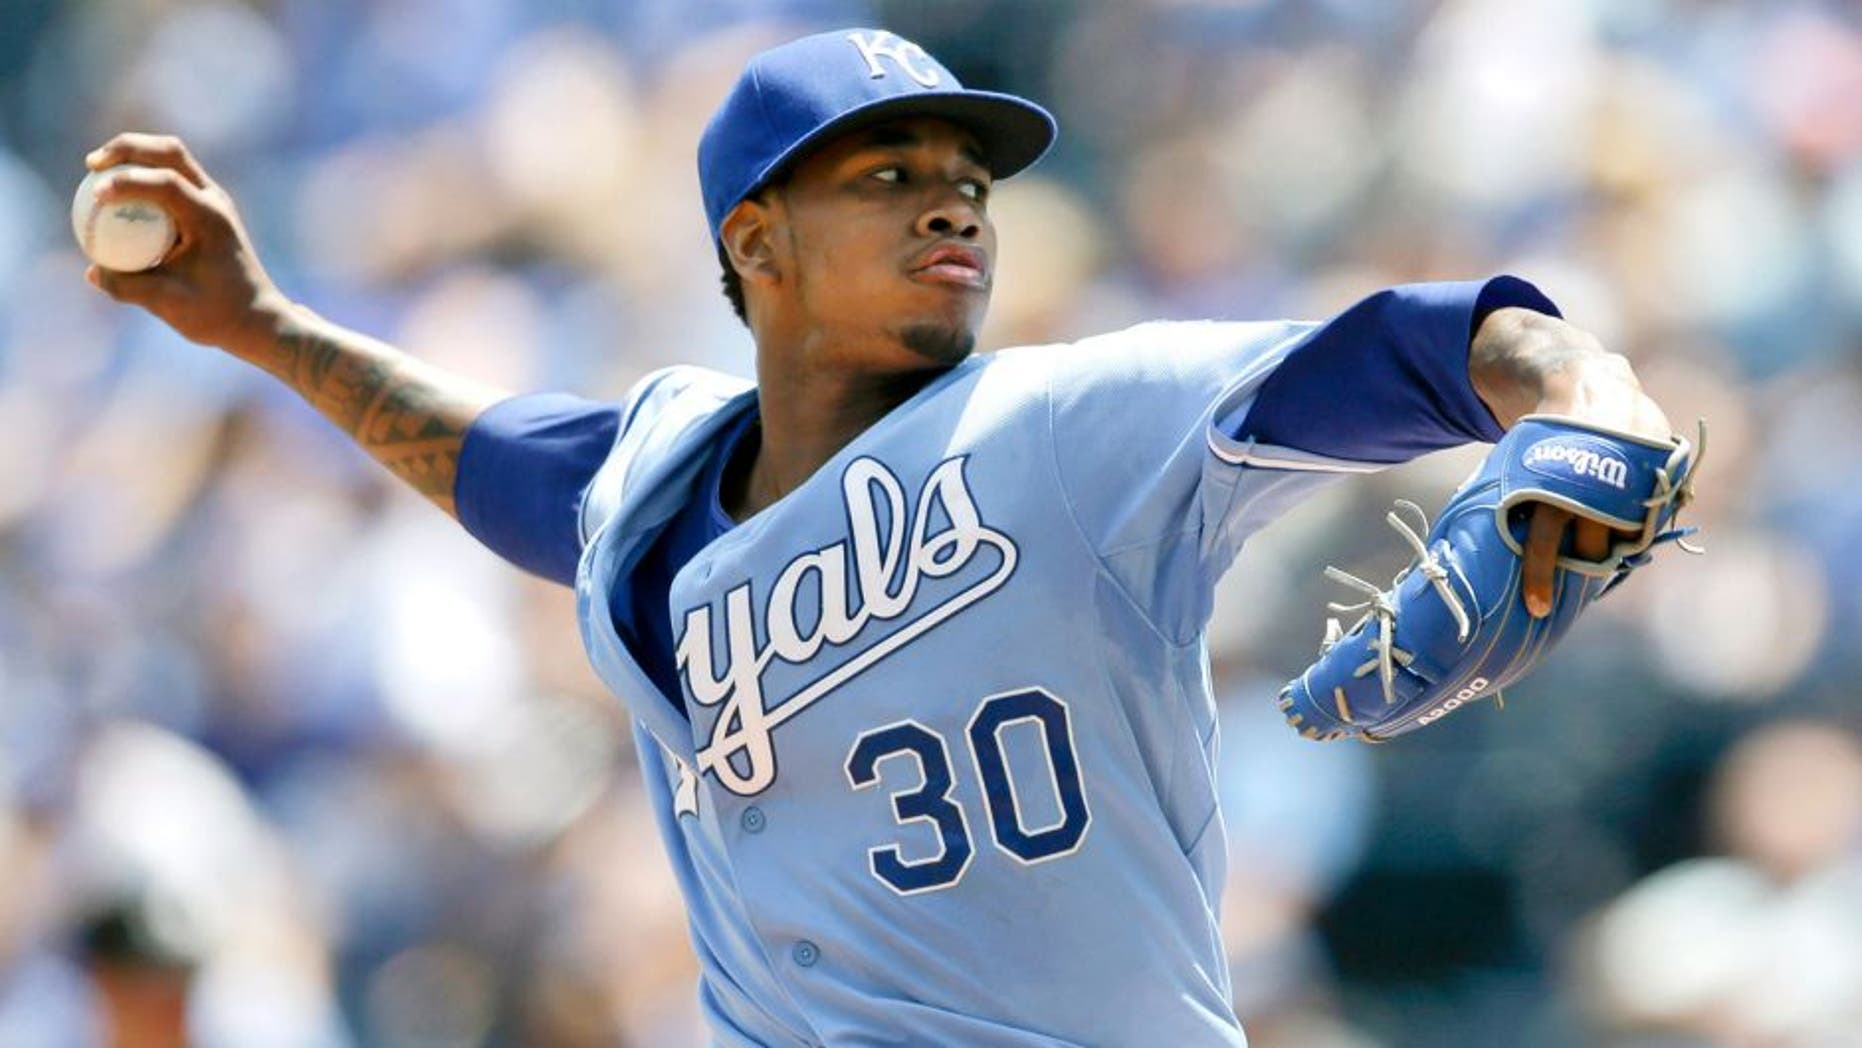 Kansas City Royals starting pitcher Yordano Ventura delivers to a Texas Rangers batter during the first inning of a baseball game at Kauffman Stadium in Kansas City, Mo., Saturday, June 6, 2015. (AP Photo/Orlin Wagner)